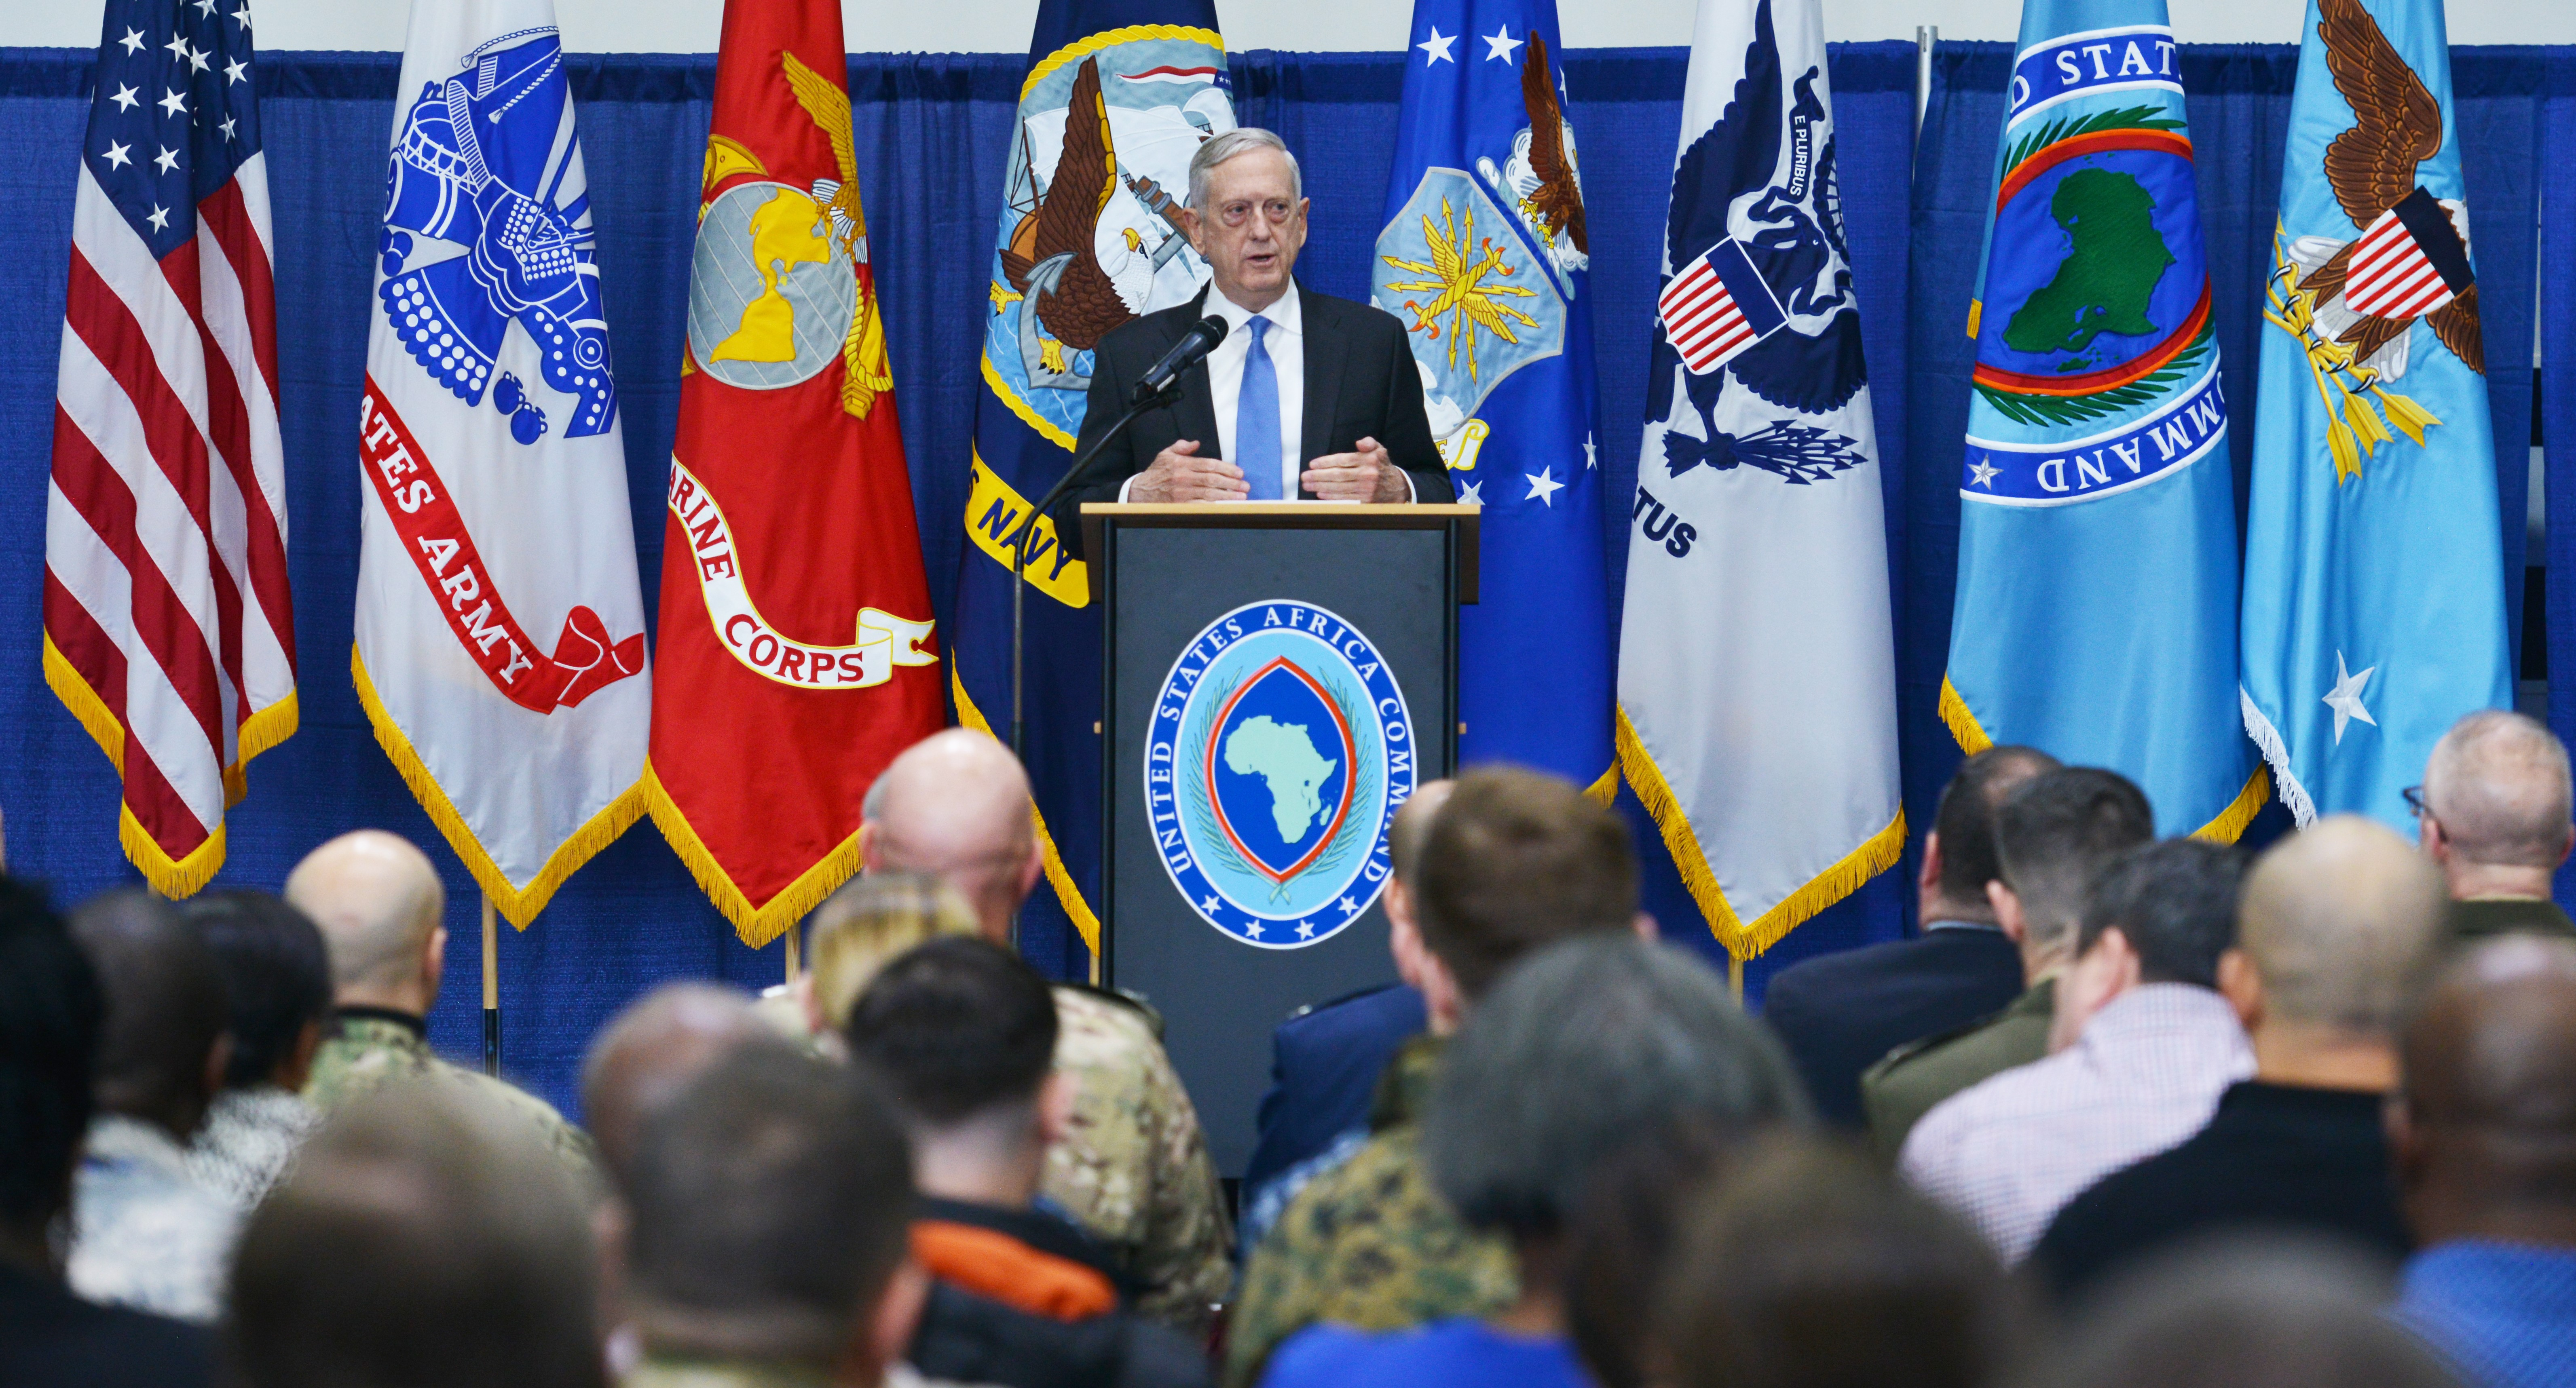 STUTTGART, Germany--Secretary of Defense James Mattis led a town hall meeting with military and civilian members of U.S. Africa Command, at Kelly Fitness Center during his visit to the command headquarters, Feb. 16, 2018. Secretary Mattis held a Q&A session following his address to attendees.  (U.S. Army photo by Staff Sgt. Grady Jones, U.S. AFRICOM Public Affairs